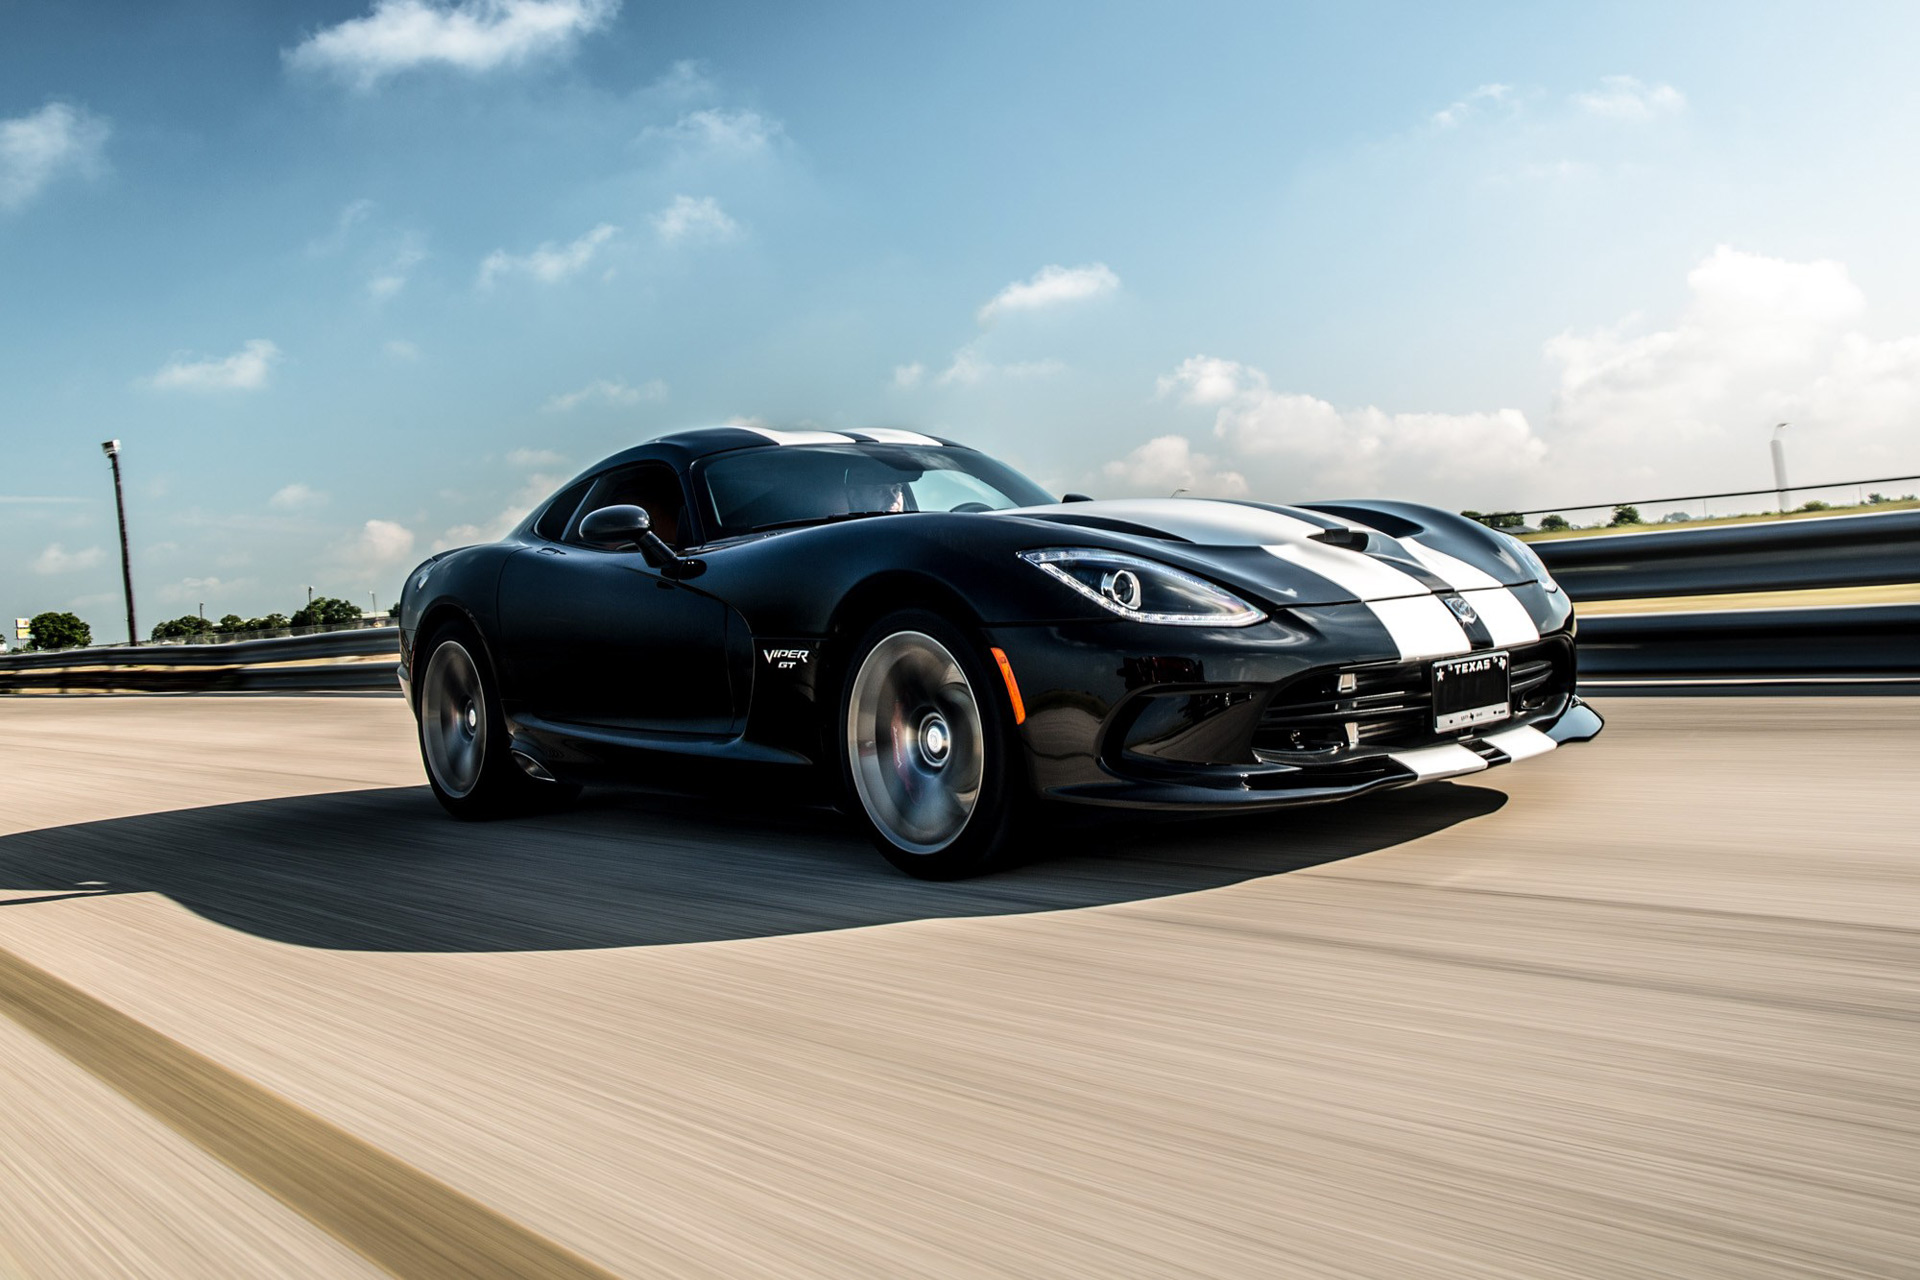 Hennessey does what Dodge won't: Supercharge the Viper